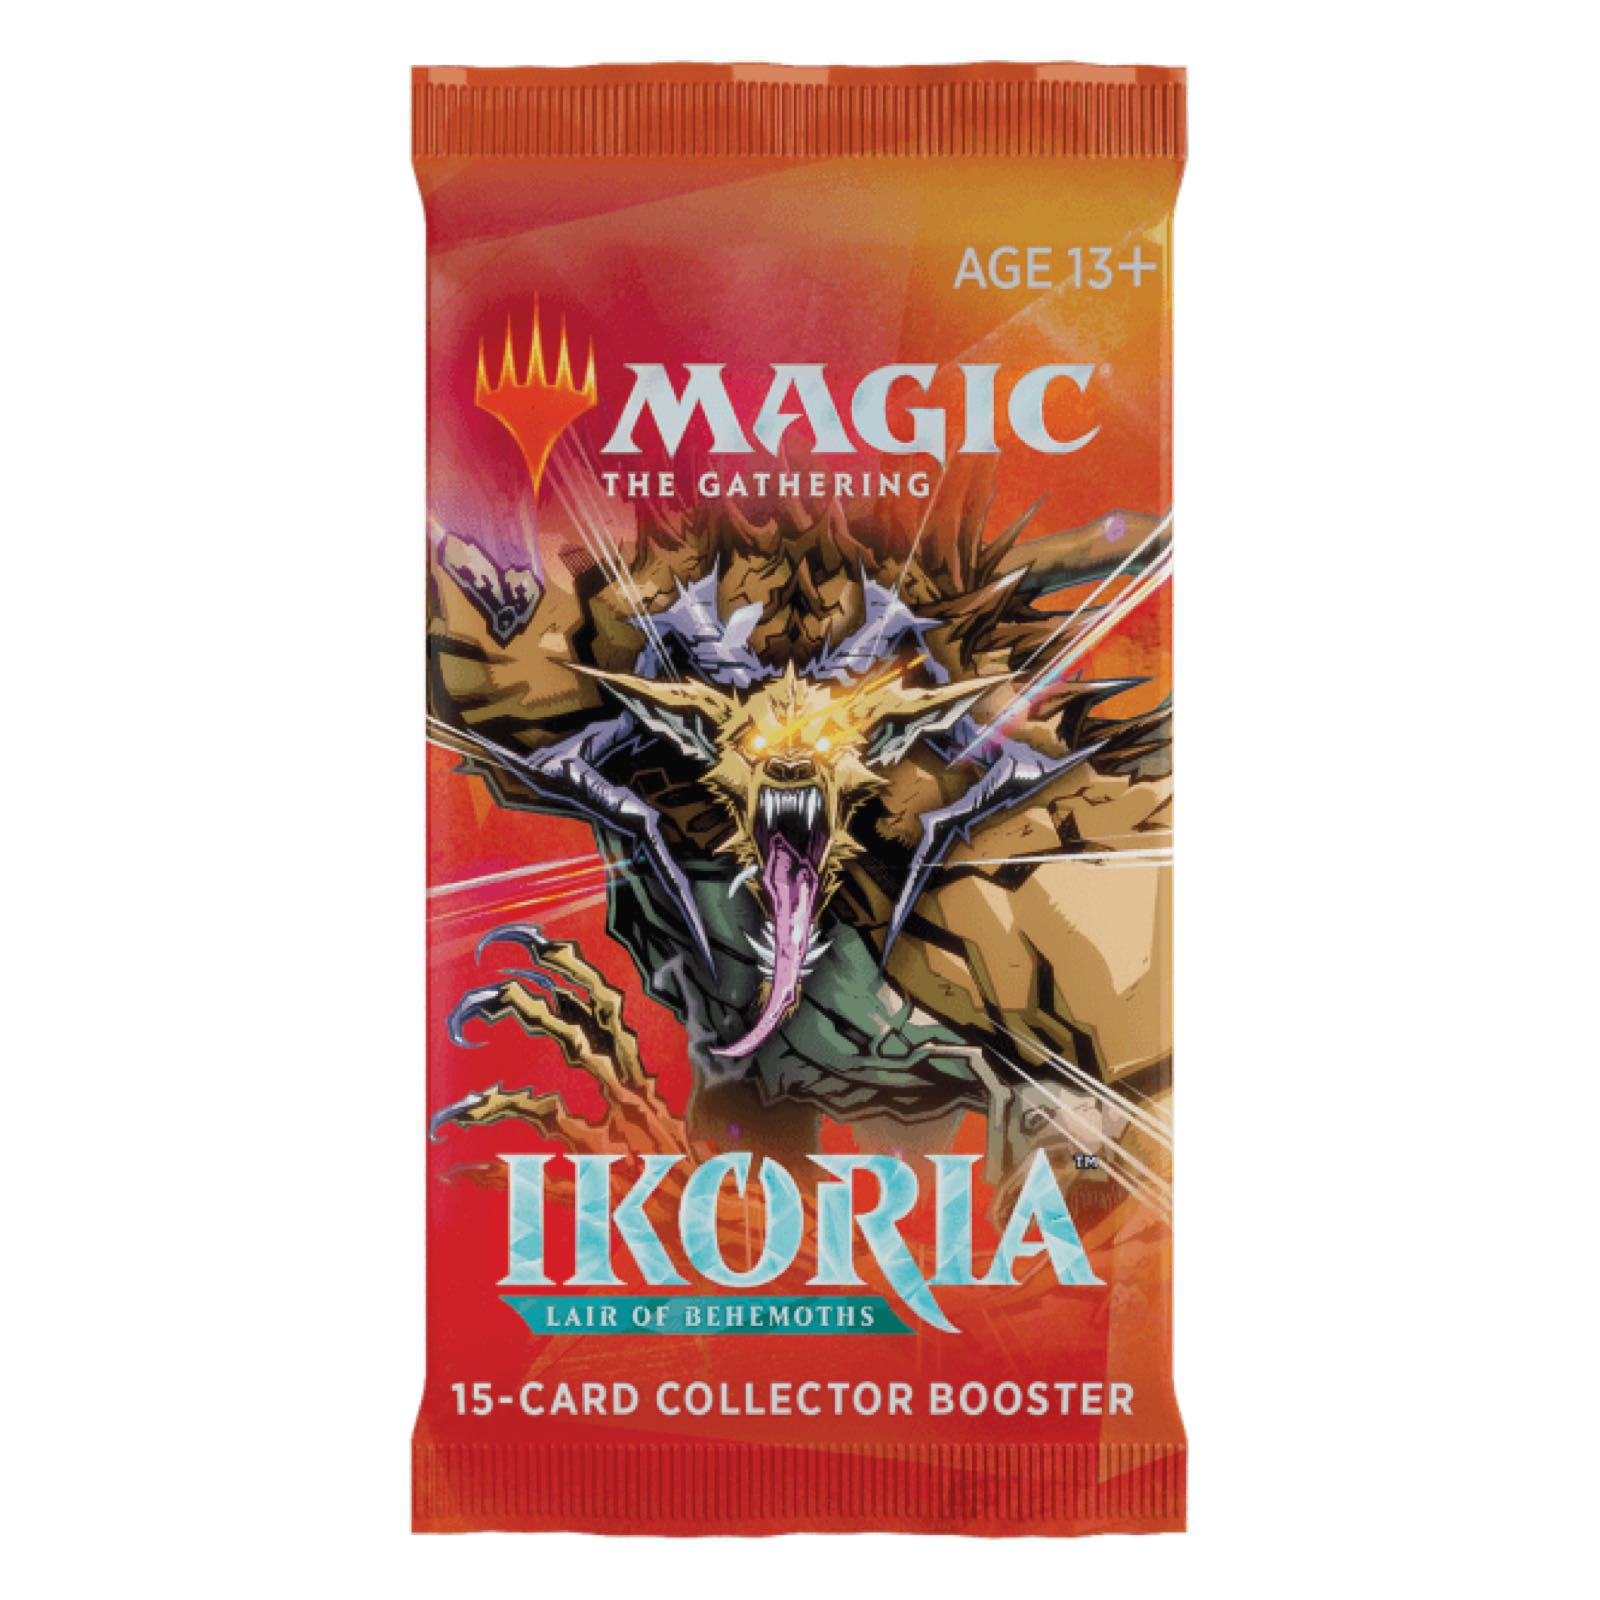 Ikoria: Lair of Behemoths Booster